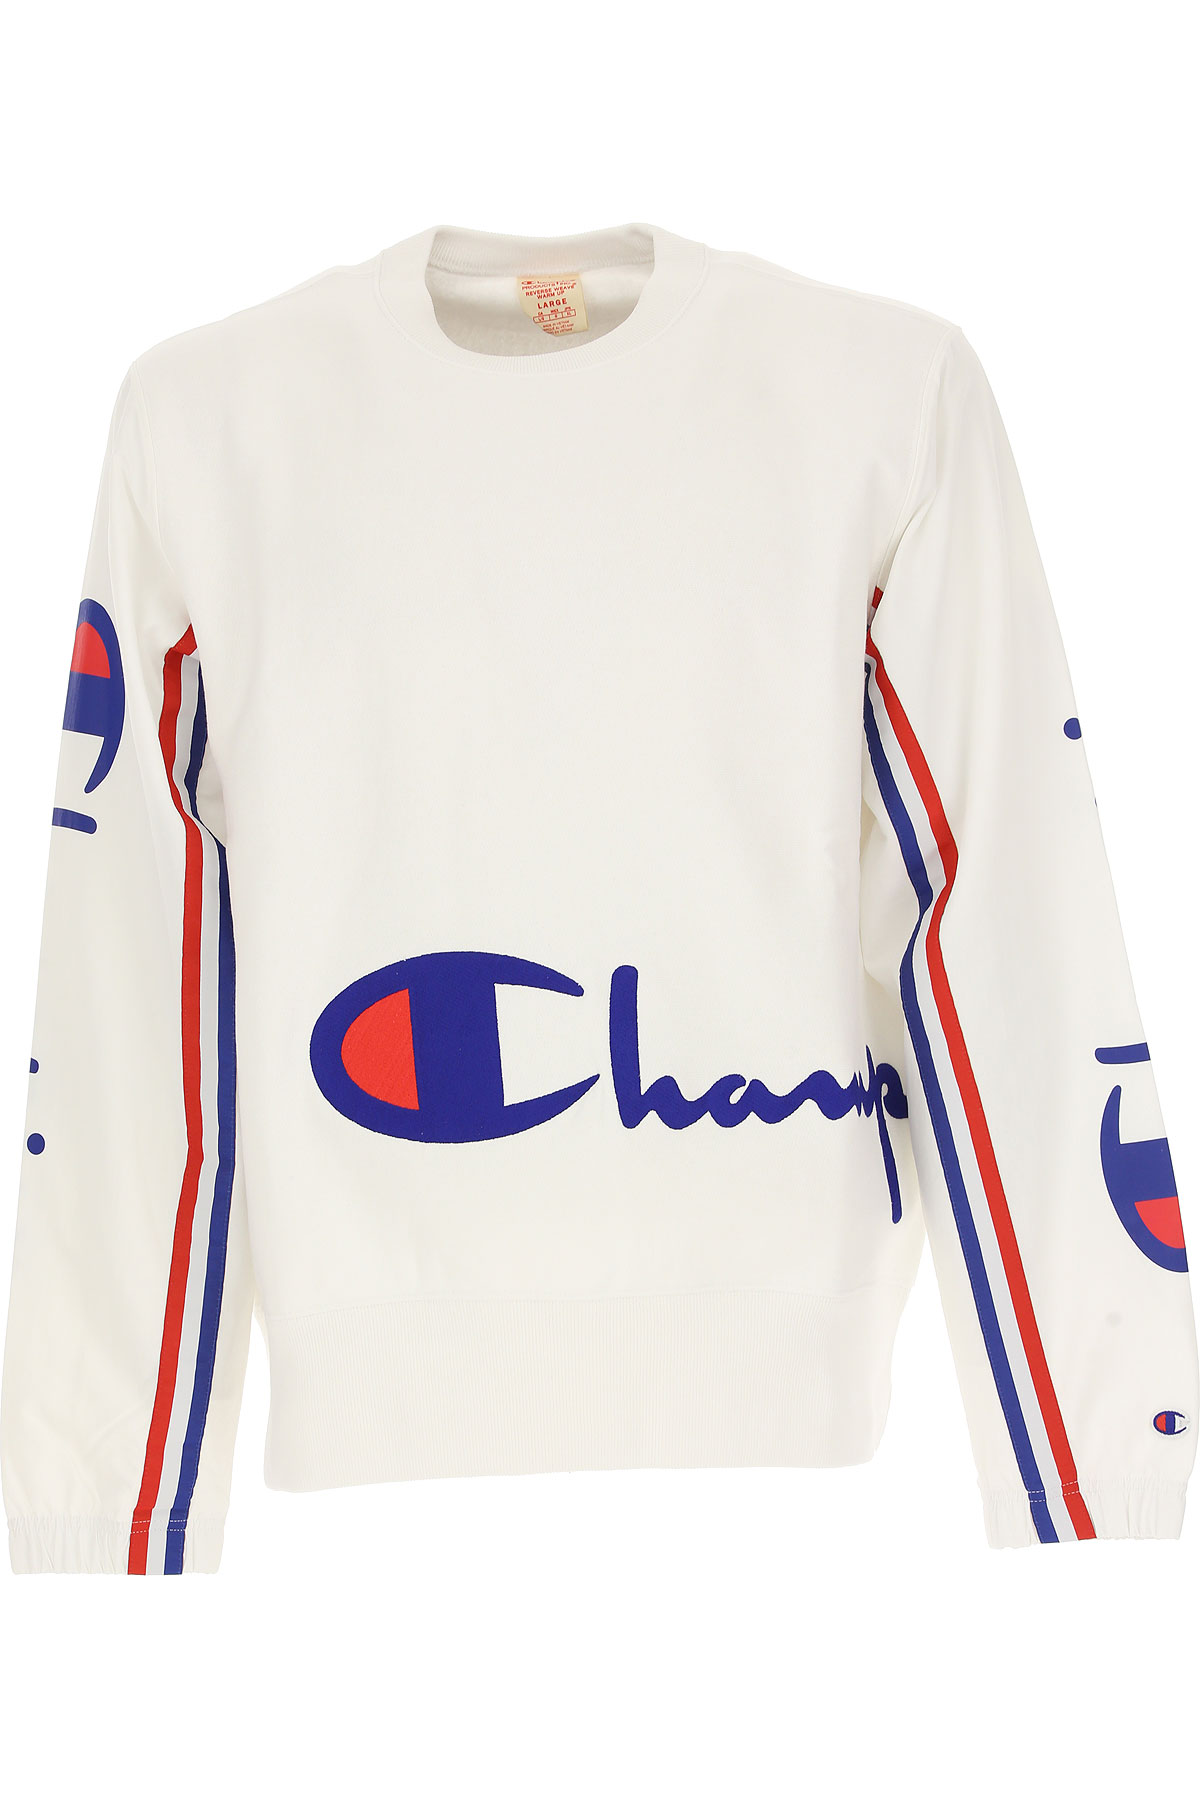 Champion Sweatshirt for Men, White, Cotton, 2017, L M S XL USA-478728